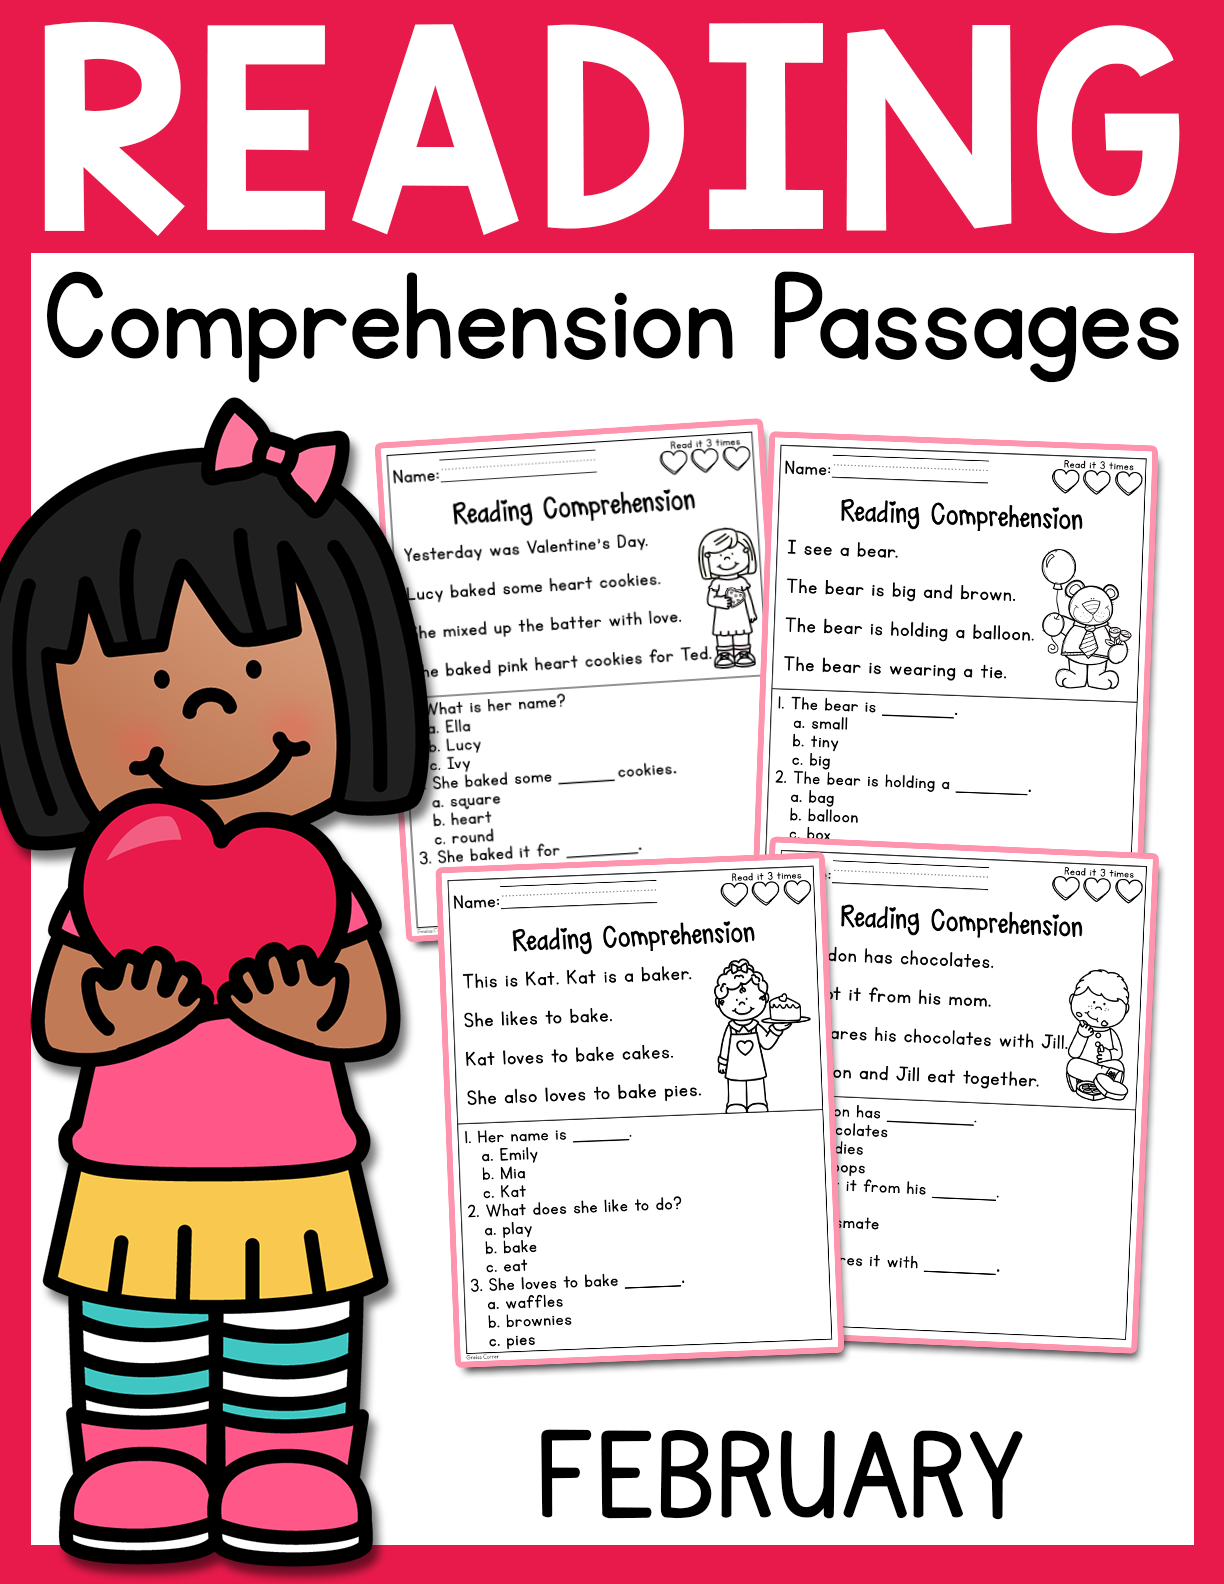 - February Reading Comprehension Passages - Madebyteachers